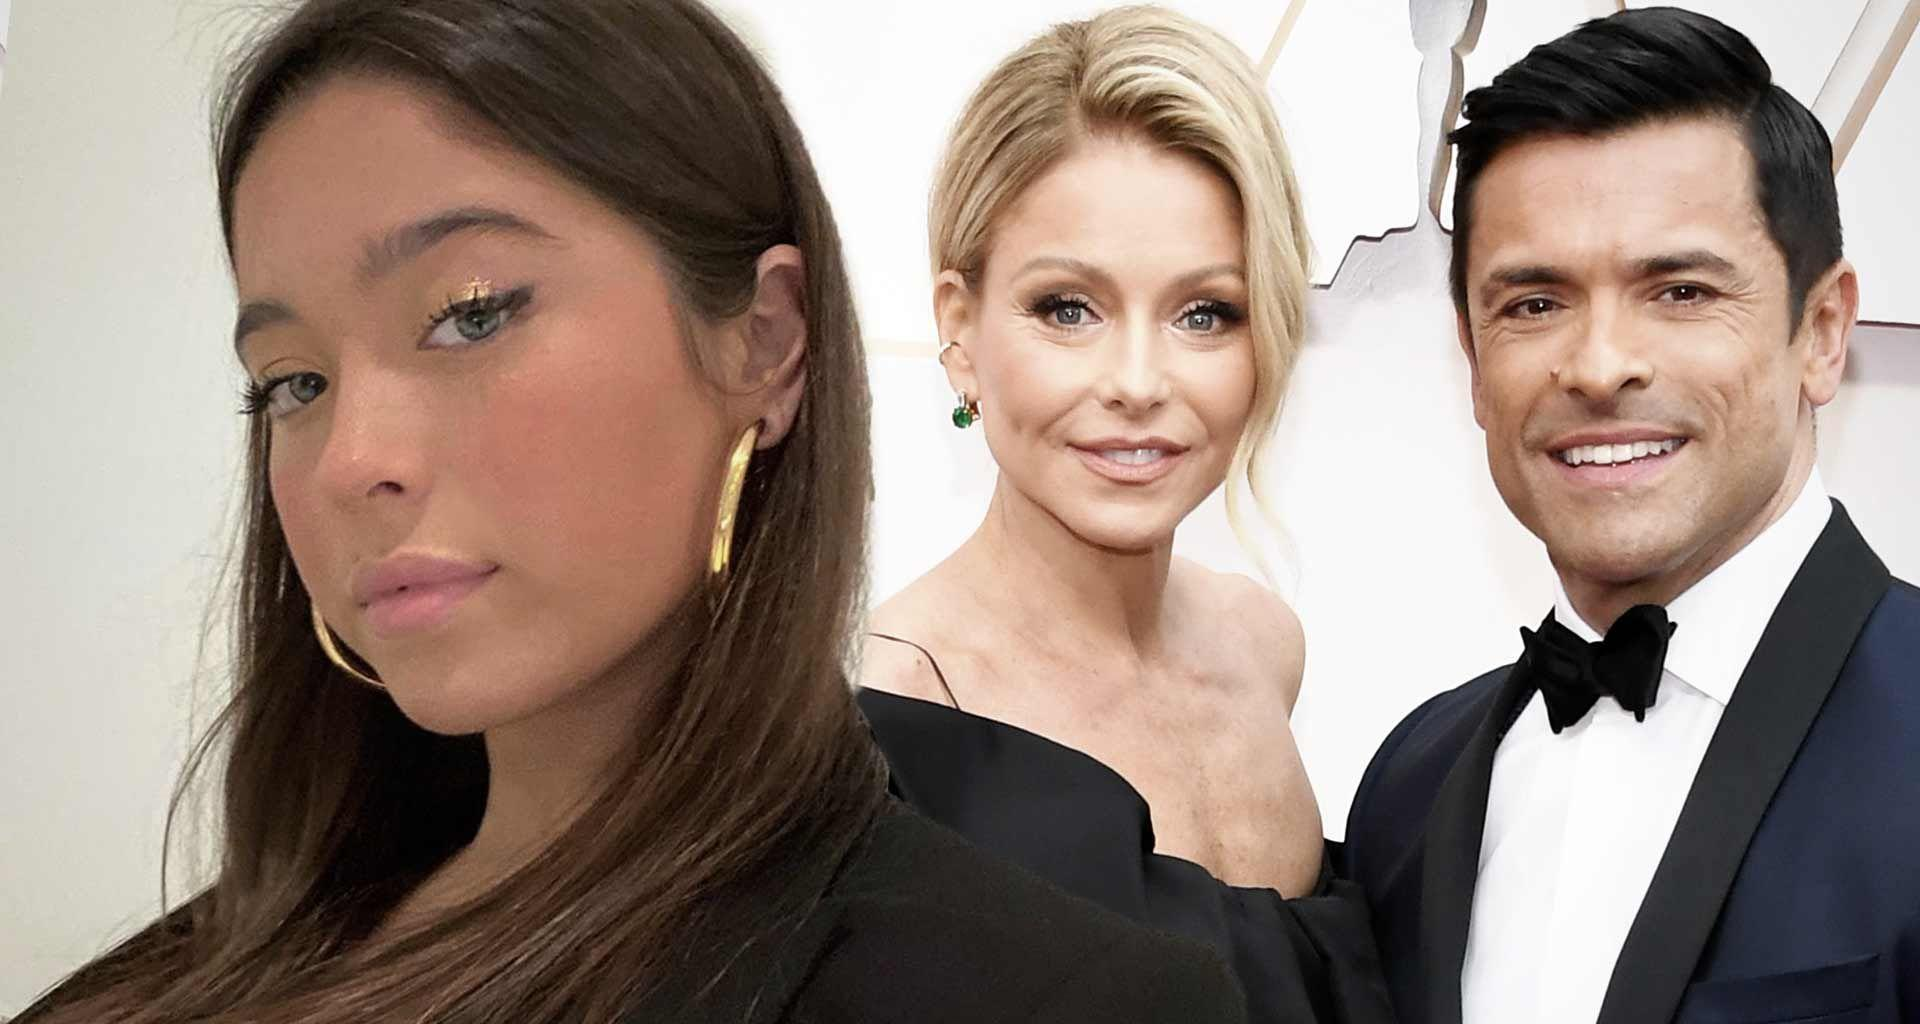 Kelly Ripa's 19-Year-Old Daughter Says Her Mother's Thirst Trap Posts Of Her Dad Mark Consuelos Are 'Disgusting!'